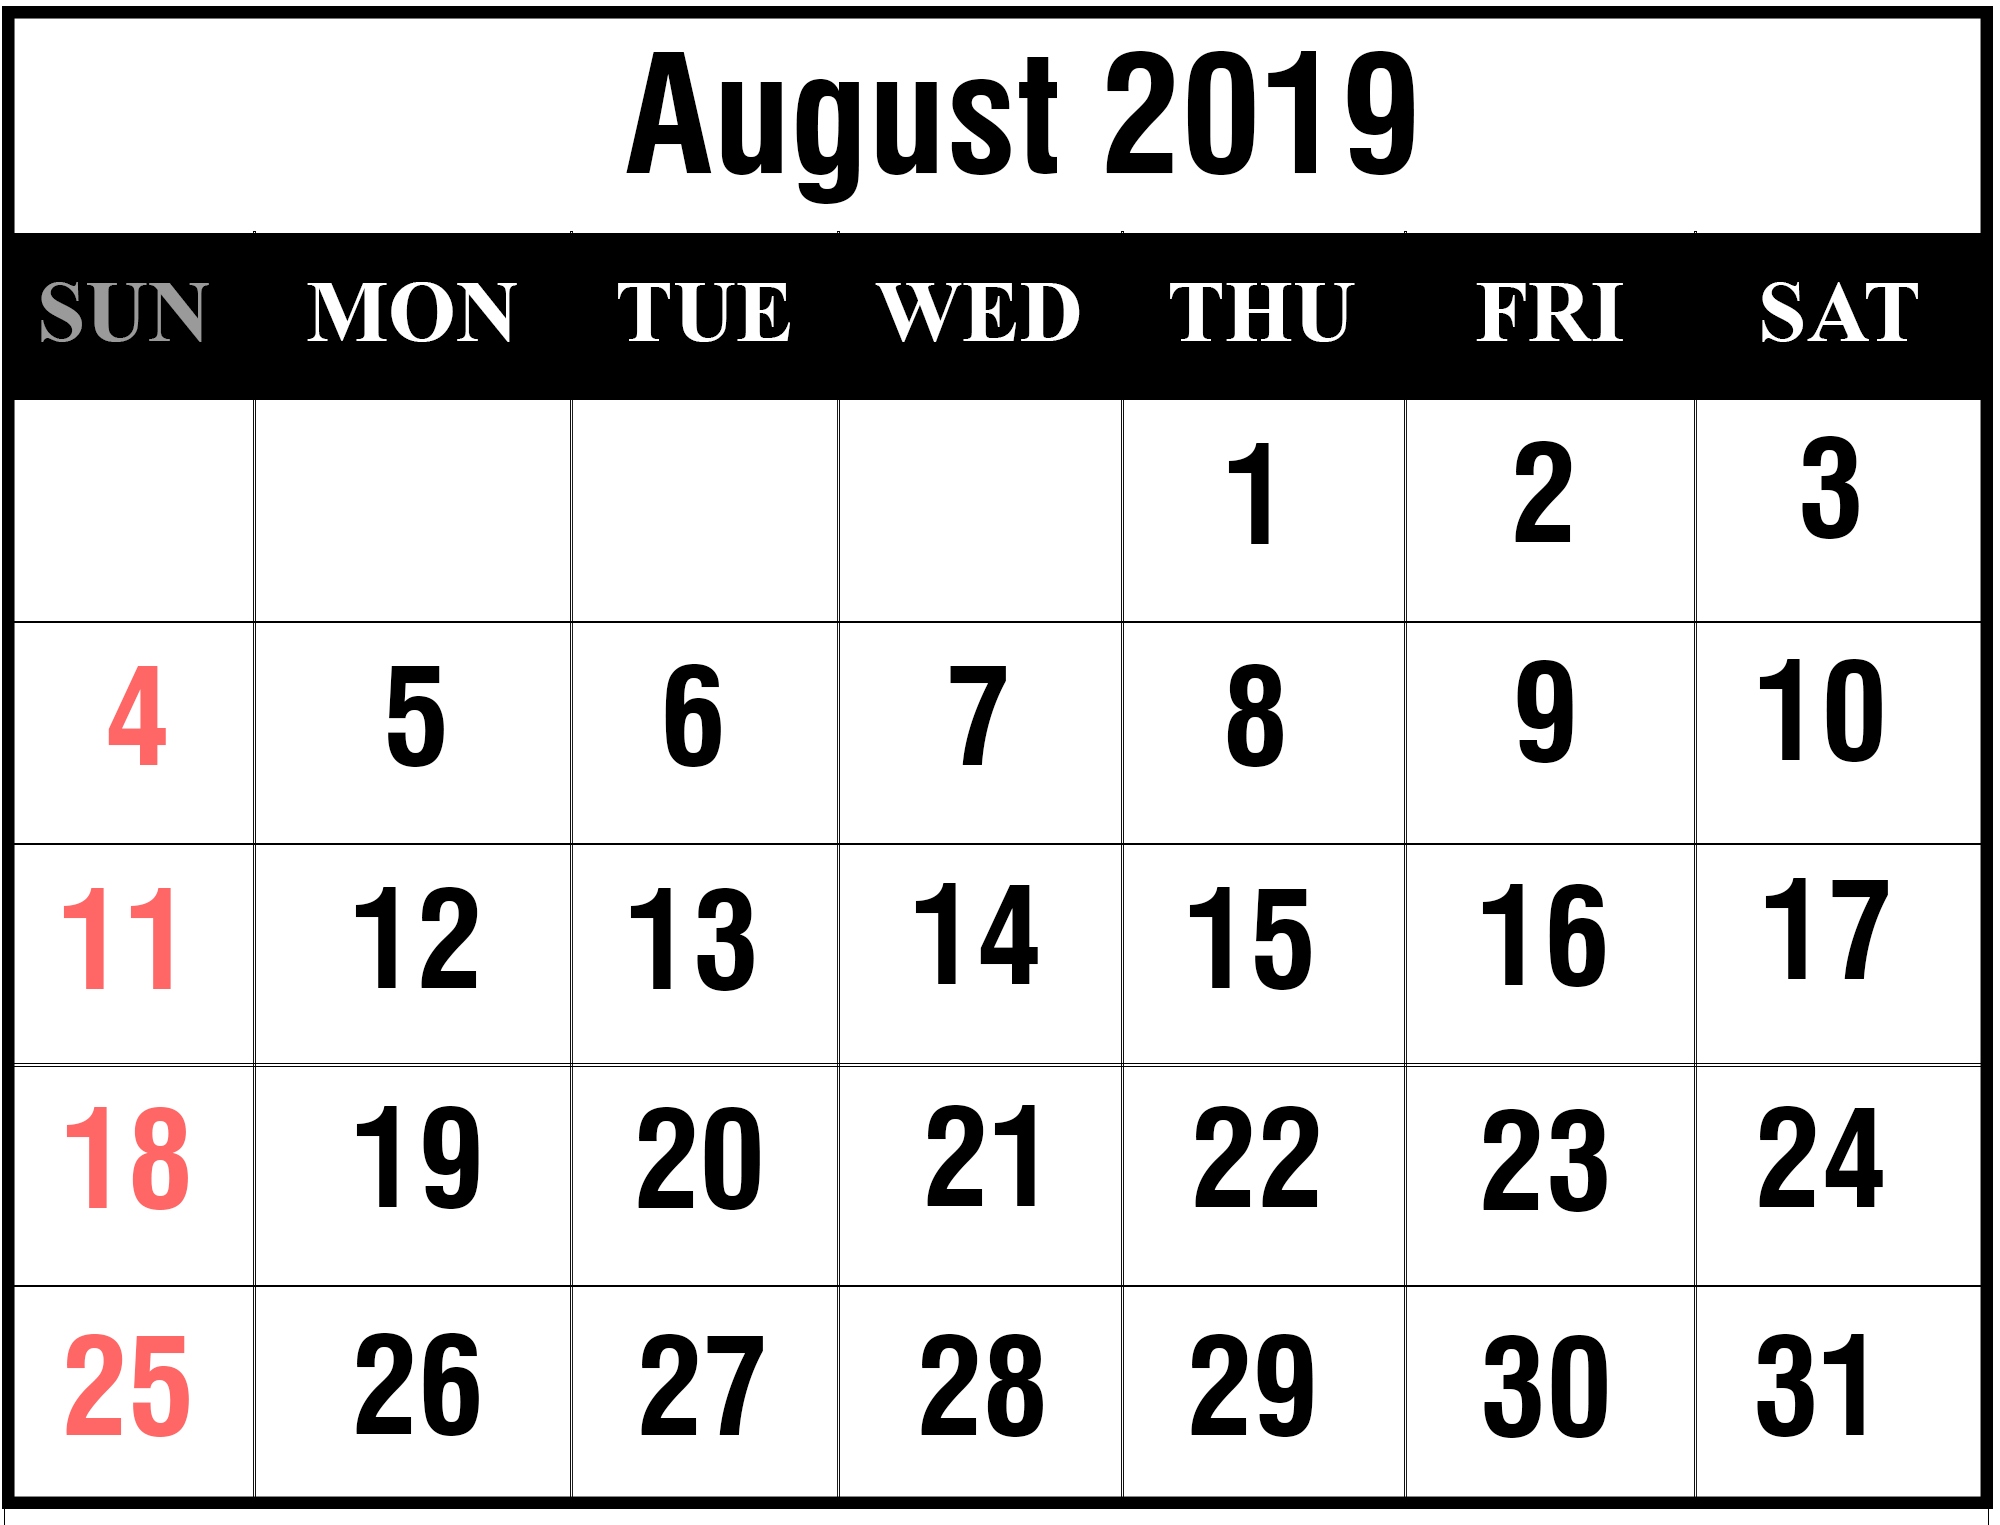 Free August 2019 Printable Calendar Template In Pdf, Excel, Word August 1 2019 Calendar